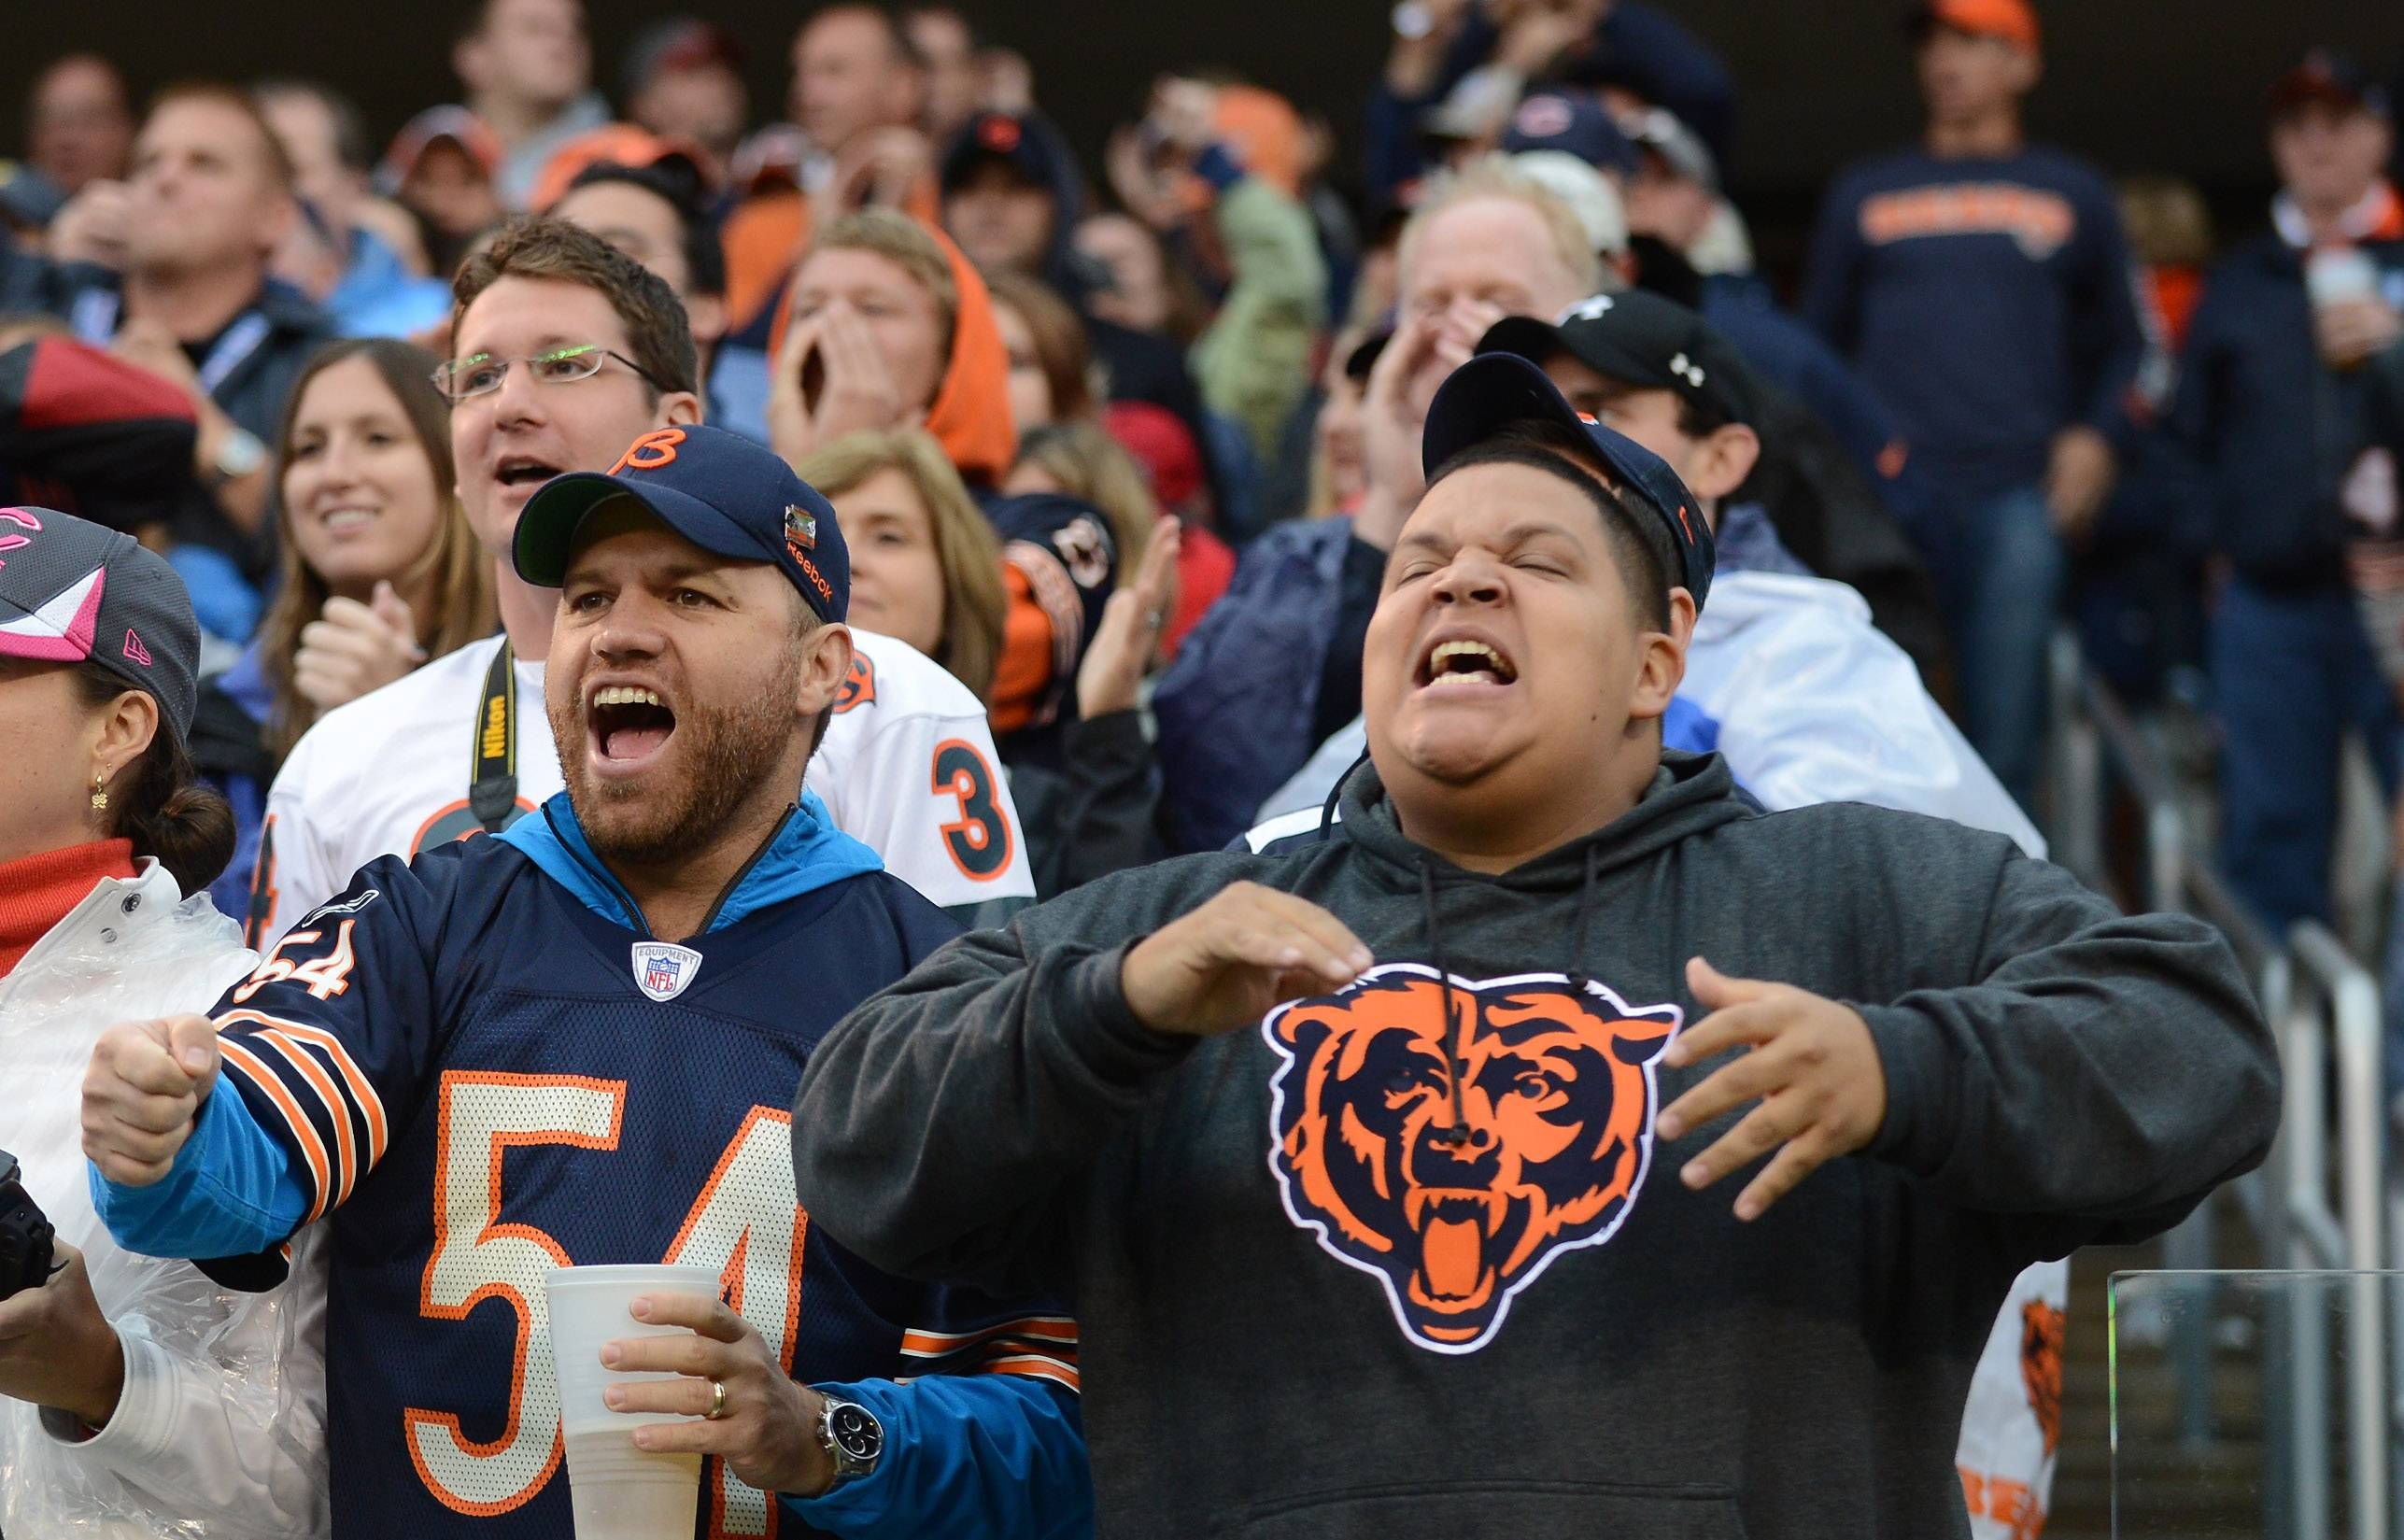 Bears fans can purchase individual-game tickets starting at 11 a.m. Thursday. Tickets for the annual Family Fest practice session at Soldier Field also are available